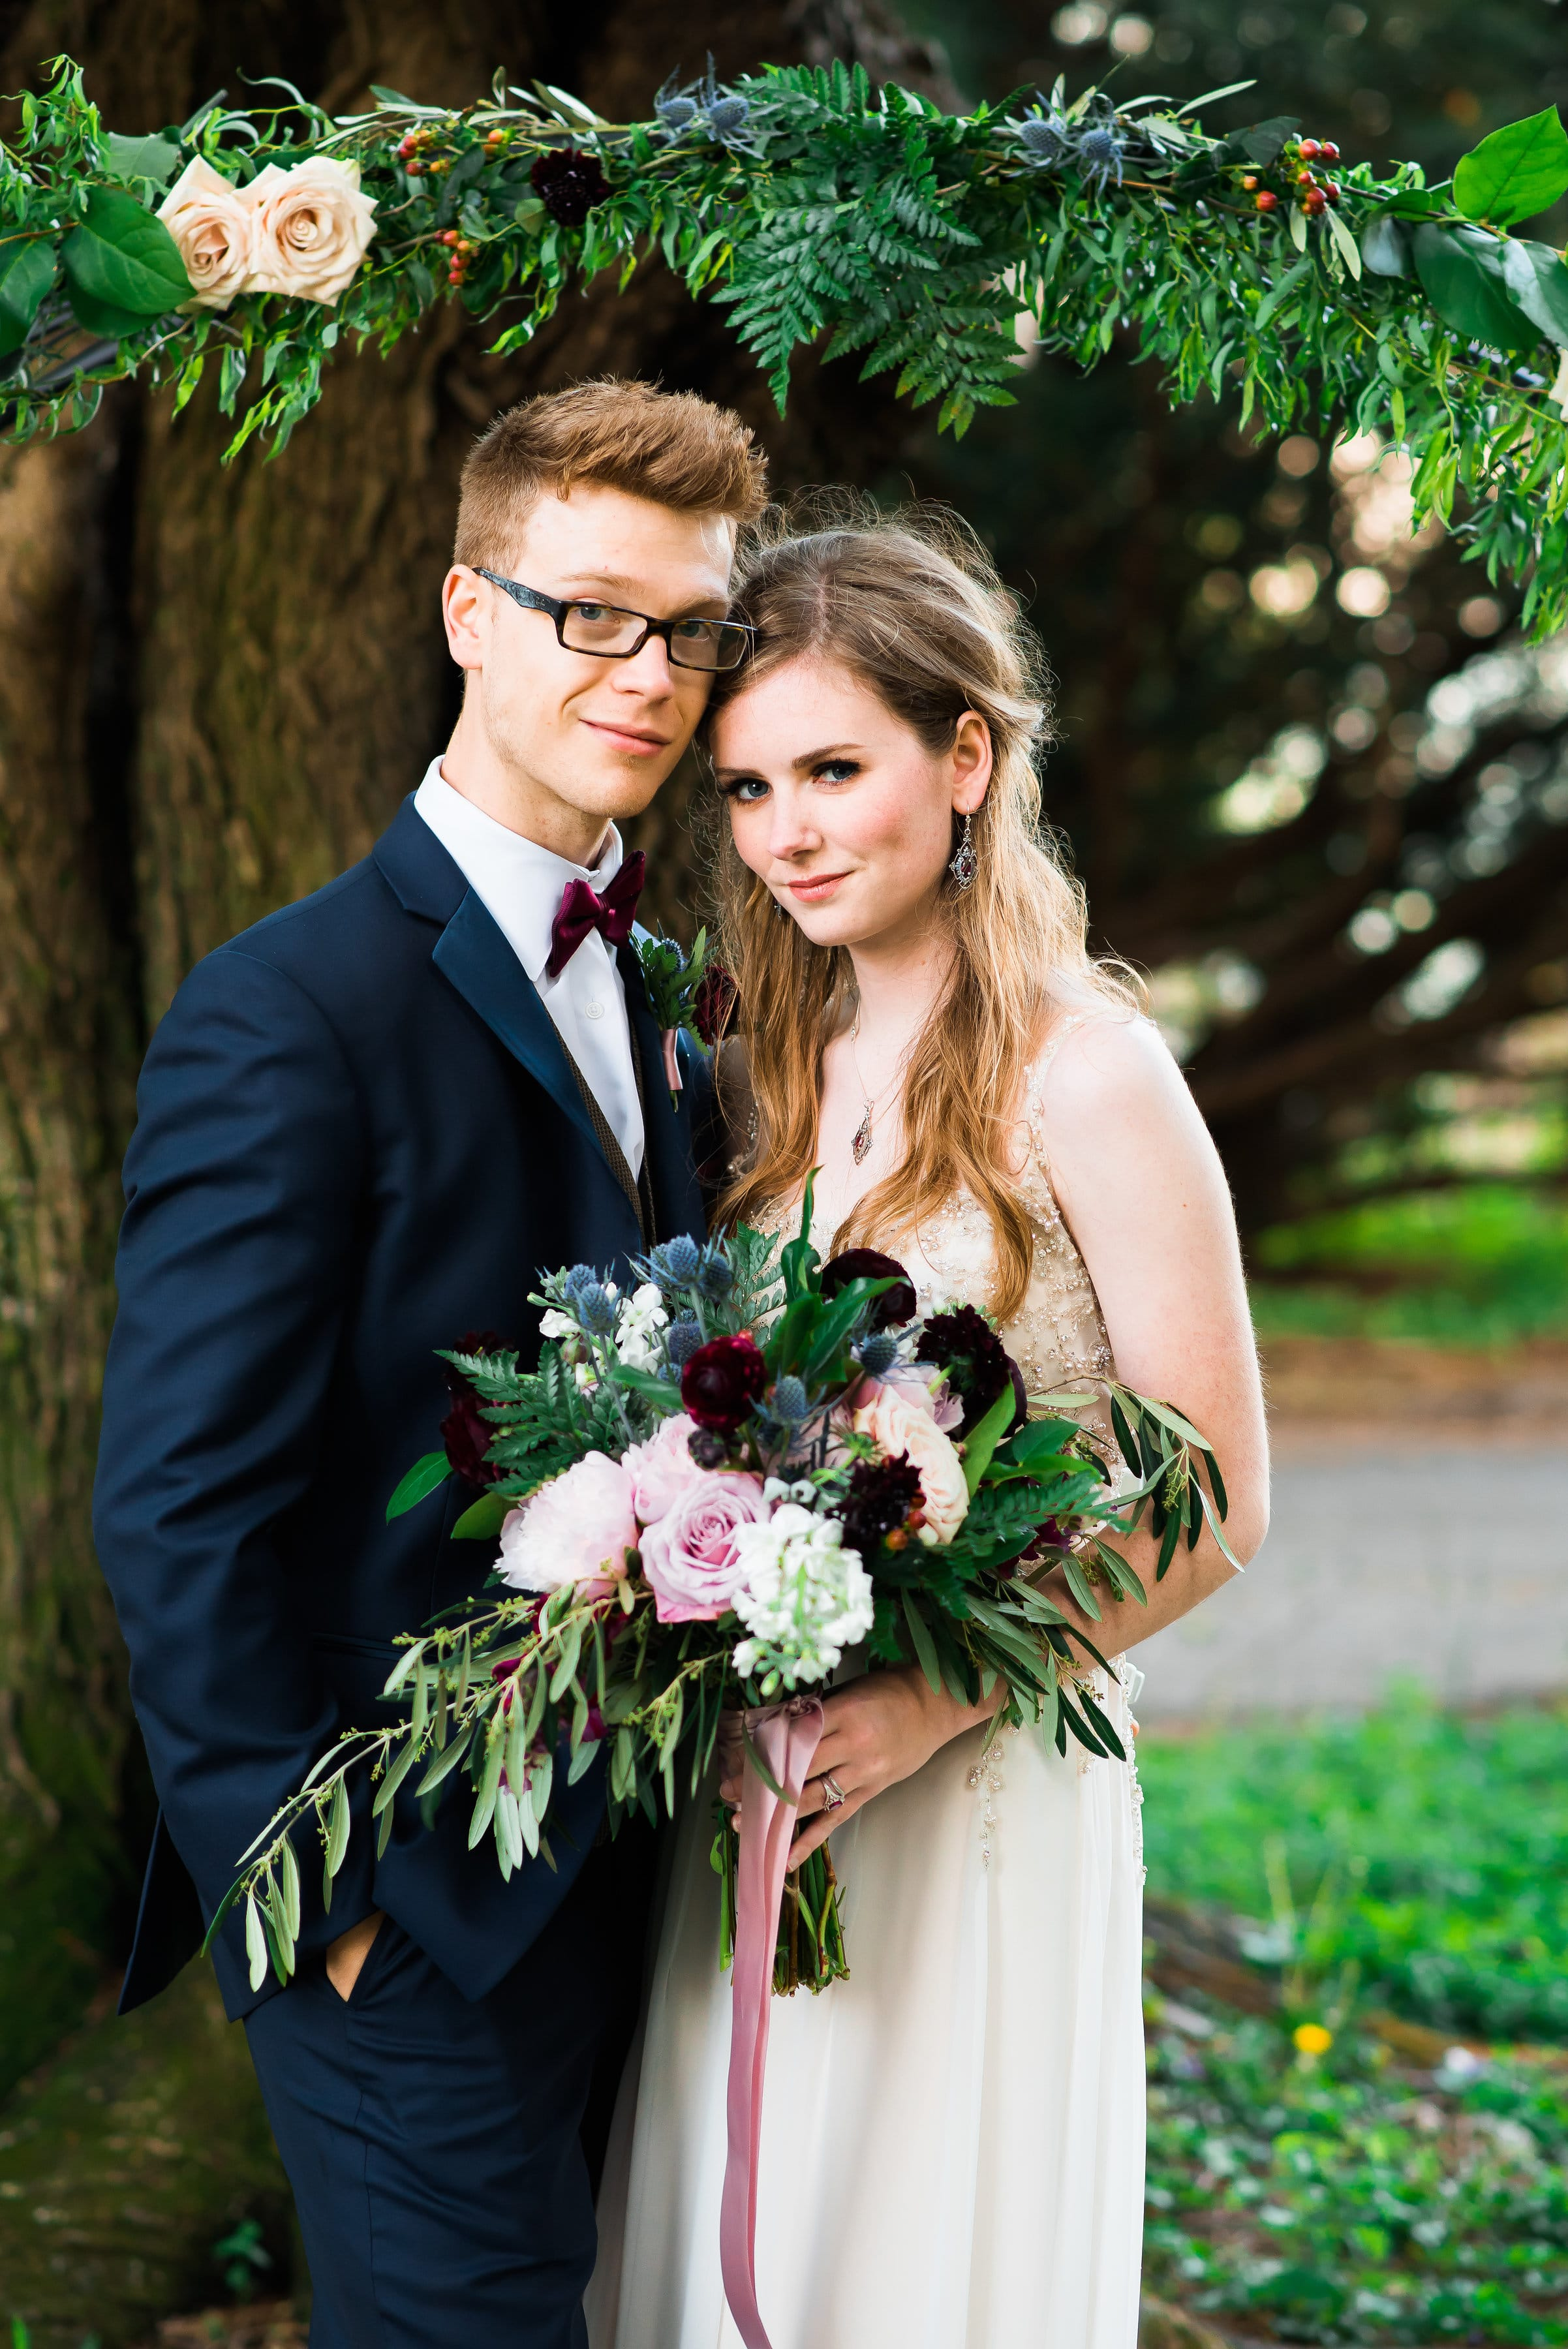 Romantic Styled Shoot with Jewel Tones and Vintage Wedding Dress